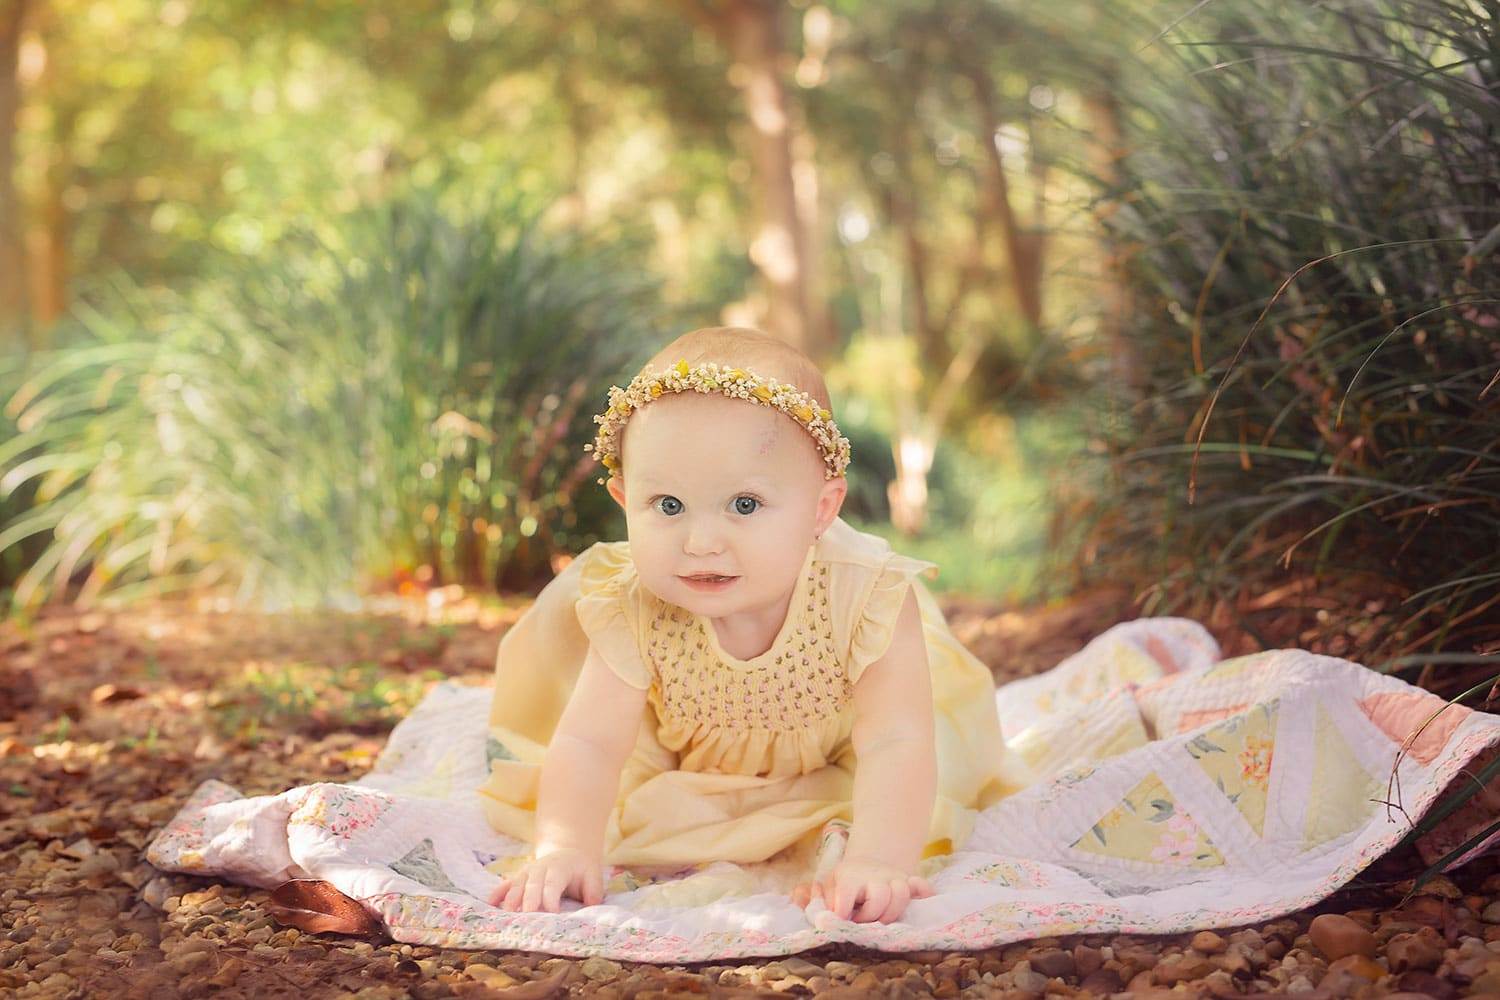 9 month old baby milestone session at park by Annie Whitaker Photography